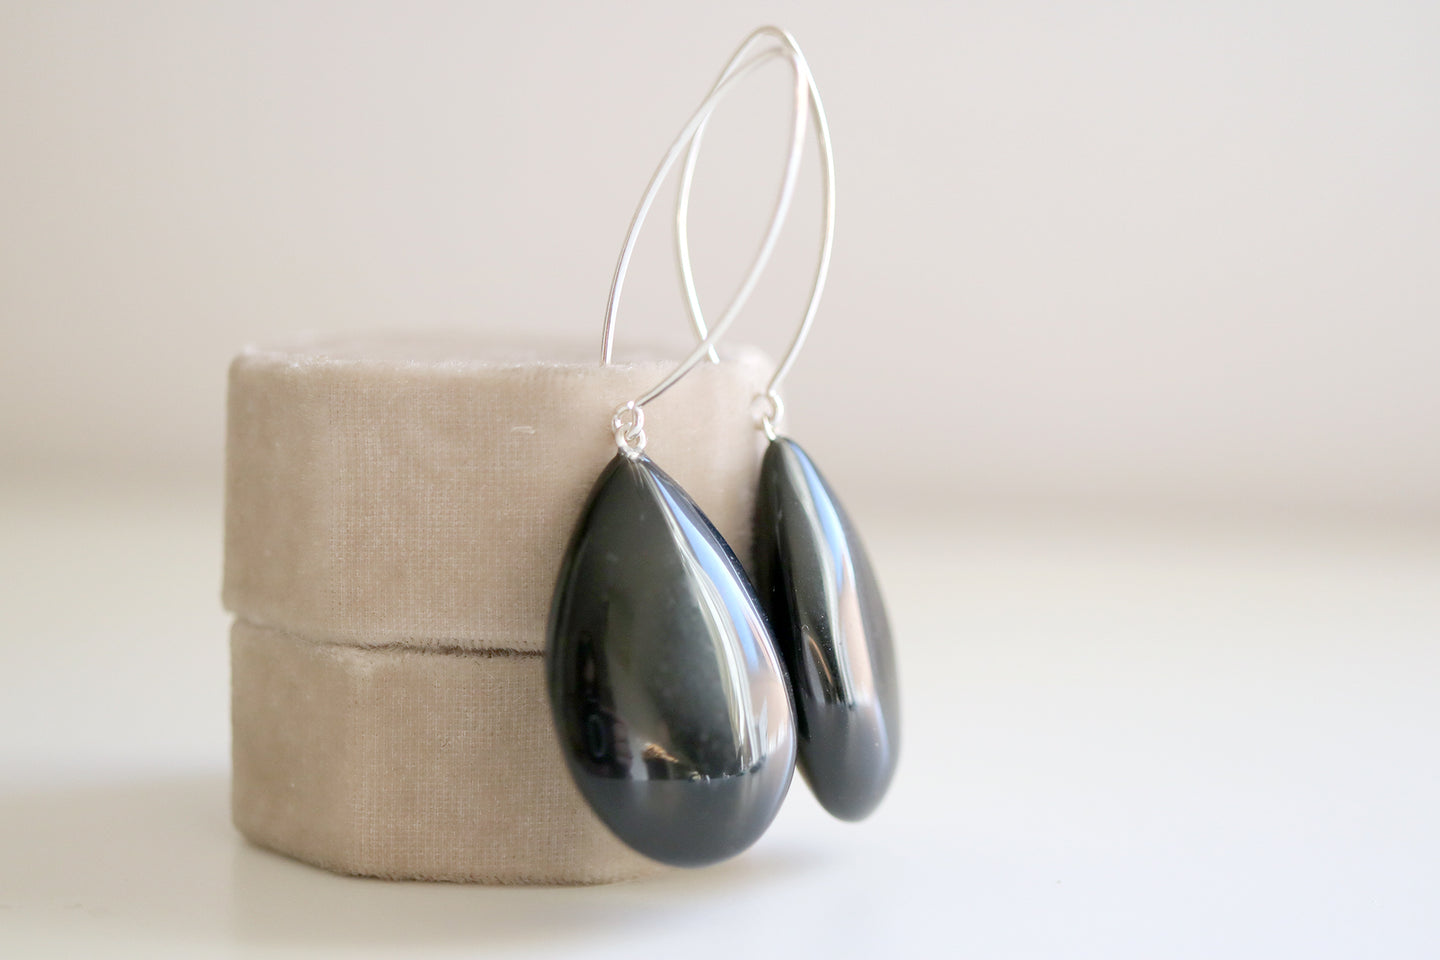 Obsidian earrings. Sterling silver earrings with Obsidian teardrops.